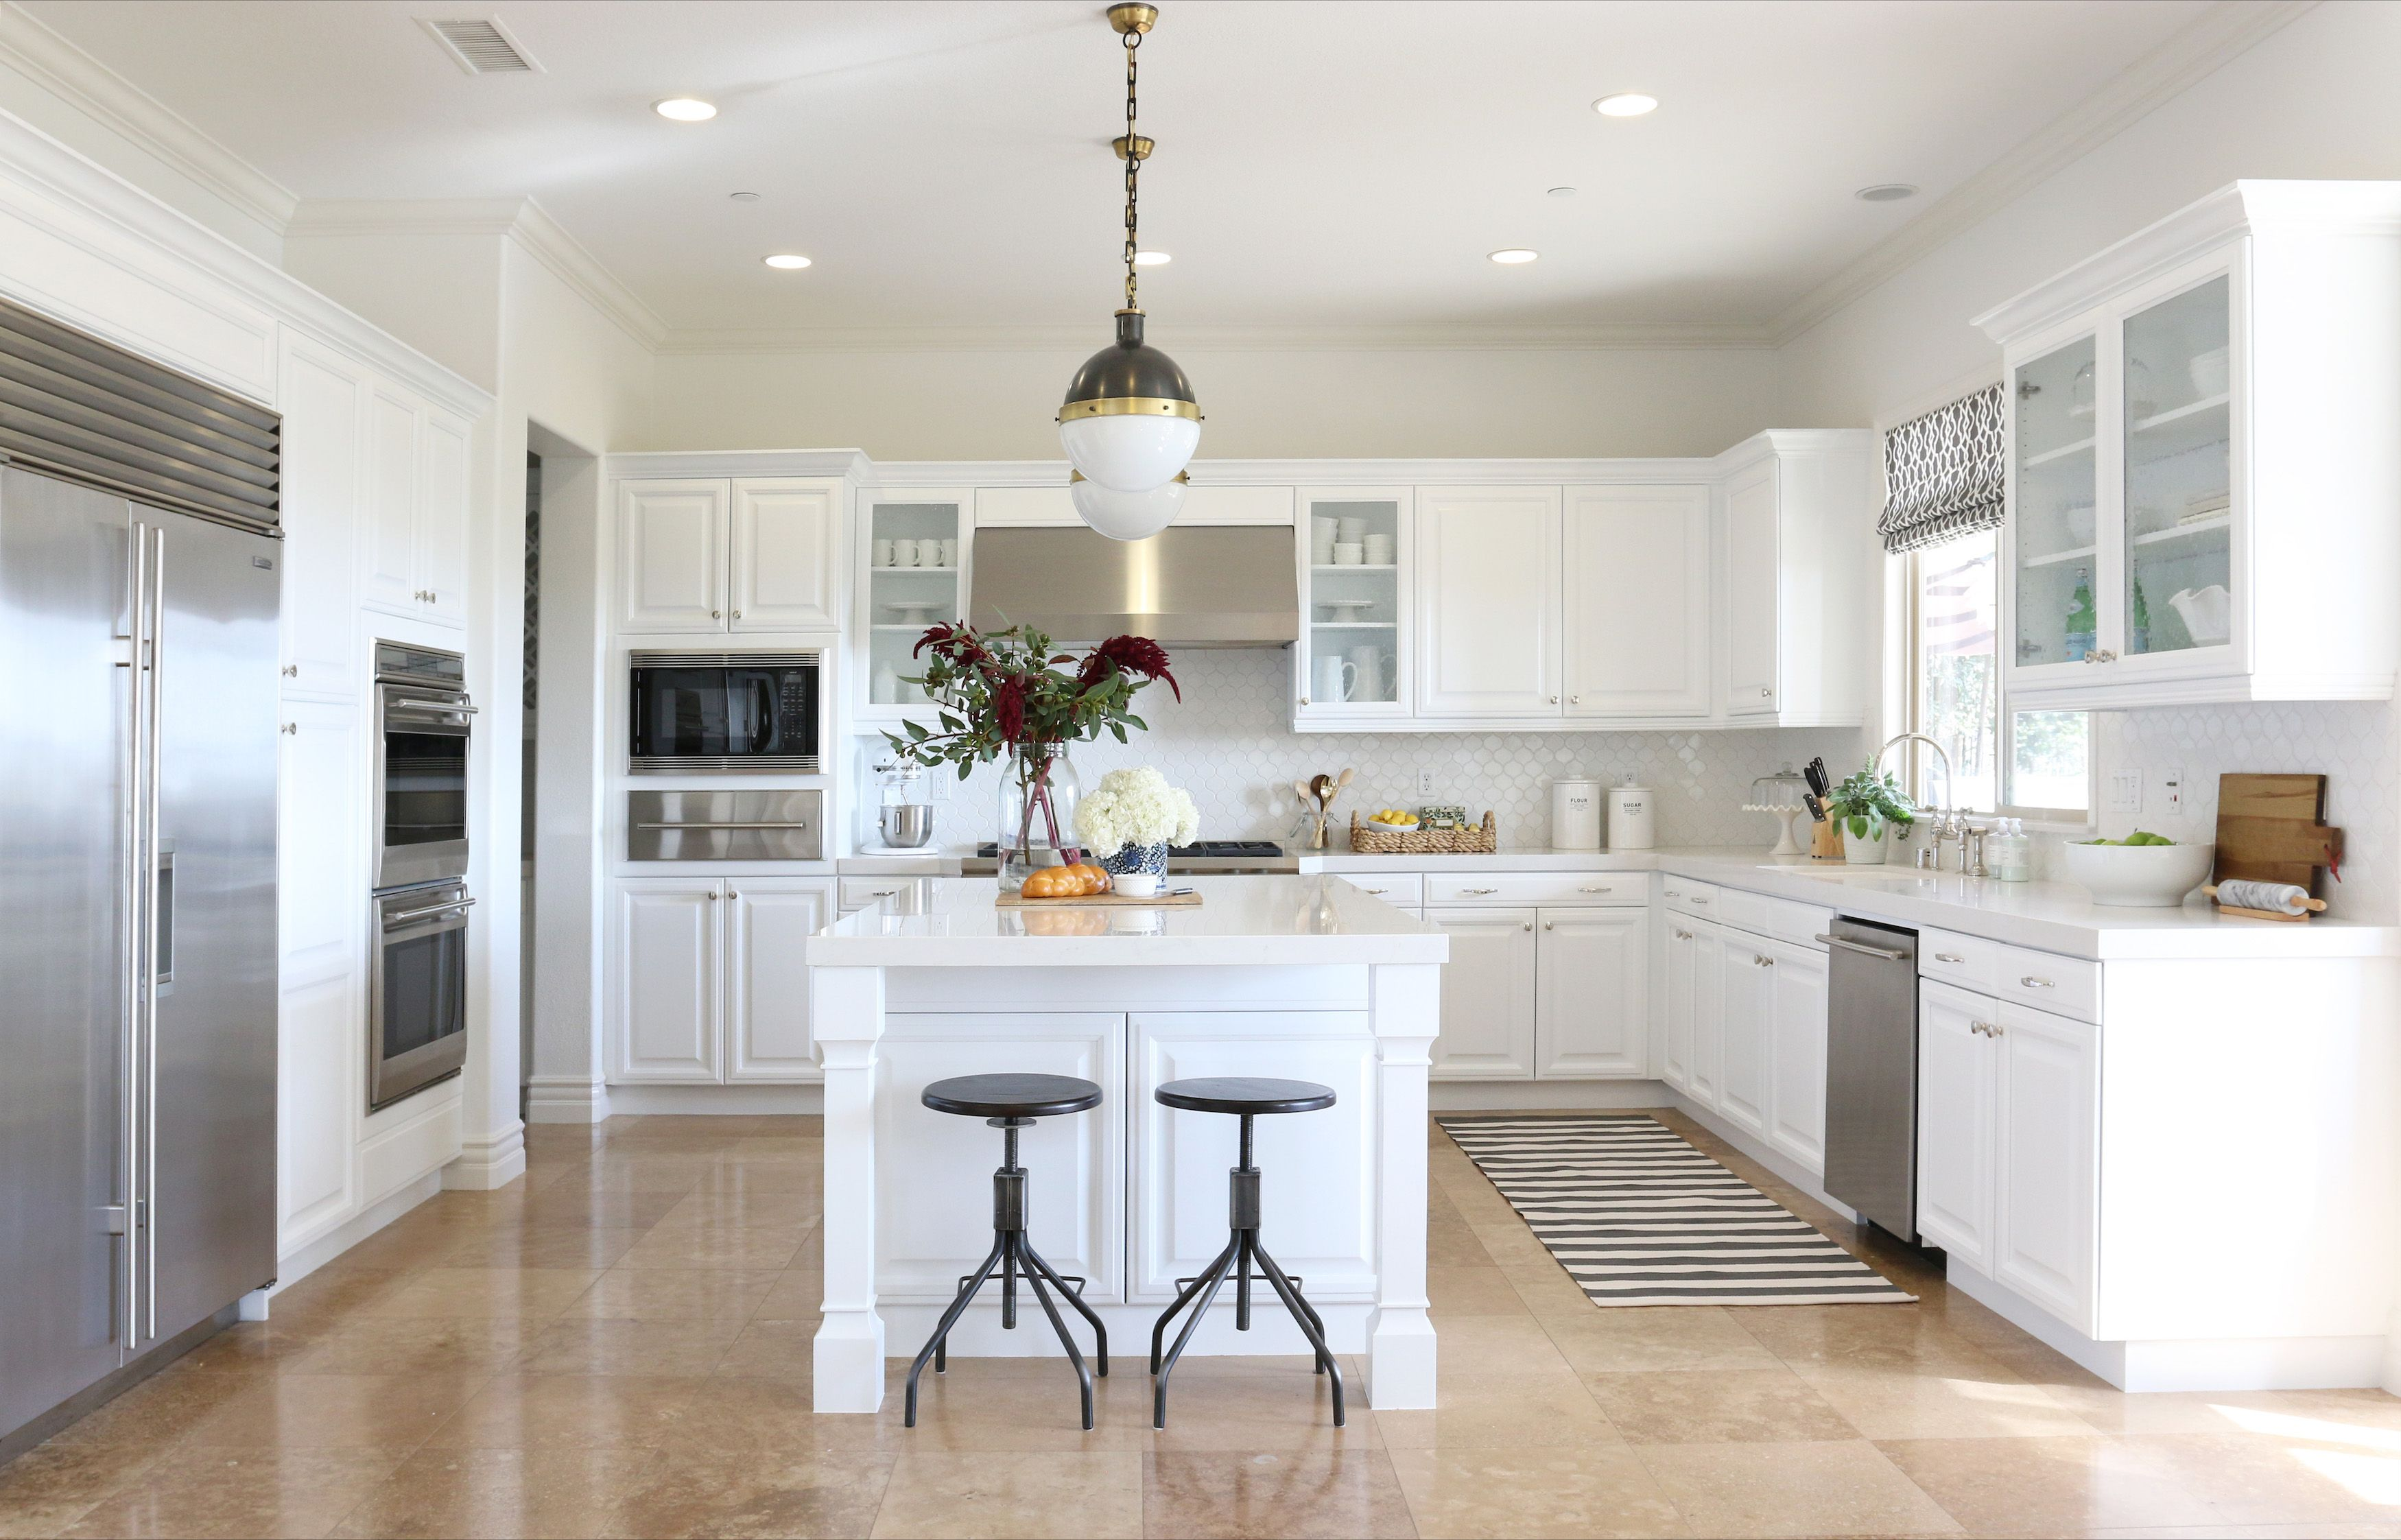 Kitchen Design With White Cabinets 11 Best White Kitchen Cabinets  Design Ideas For White Cabinets